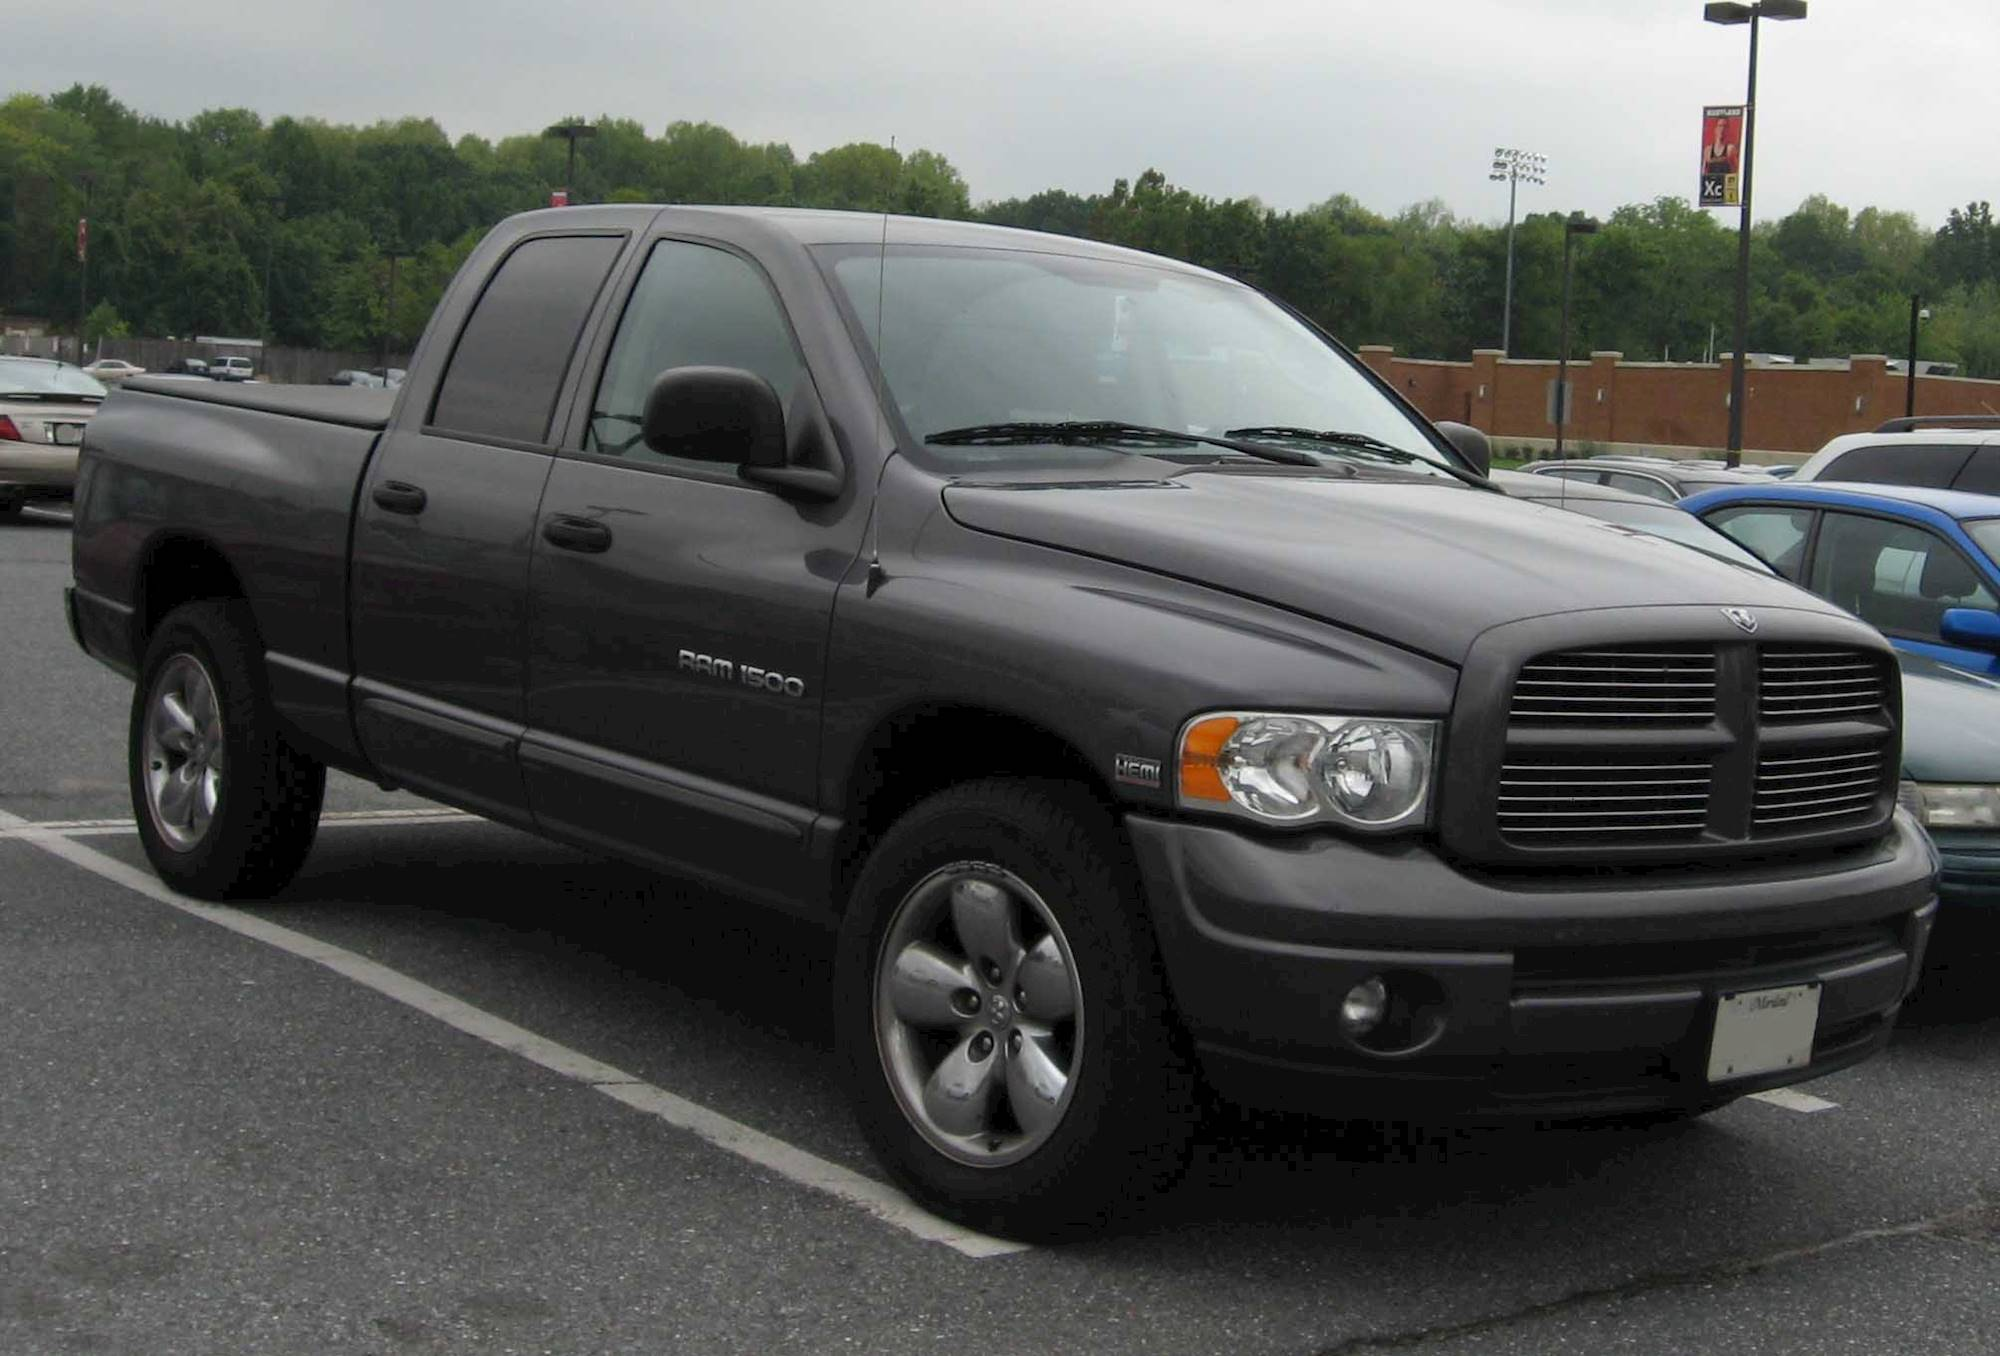 2003 Dodge Ram 1500 SLT Laramie 4x4 Quad Cab 140 5 in WB 5 spd manual w OD